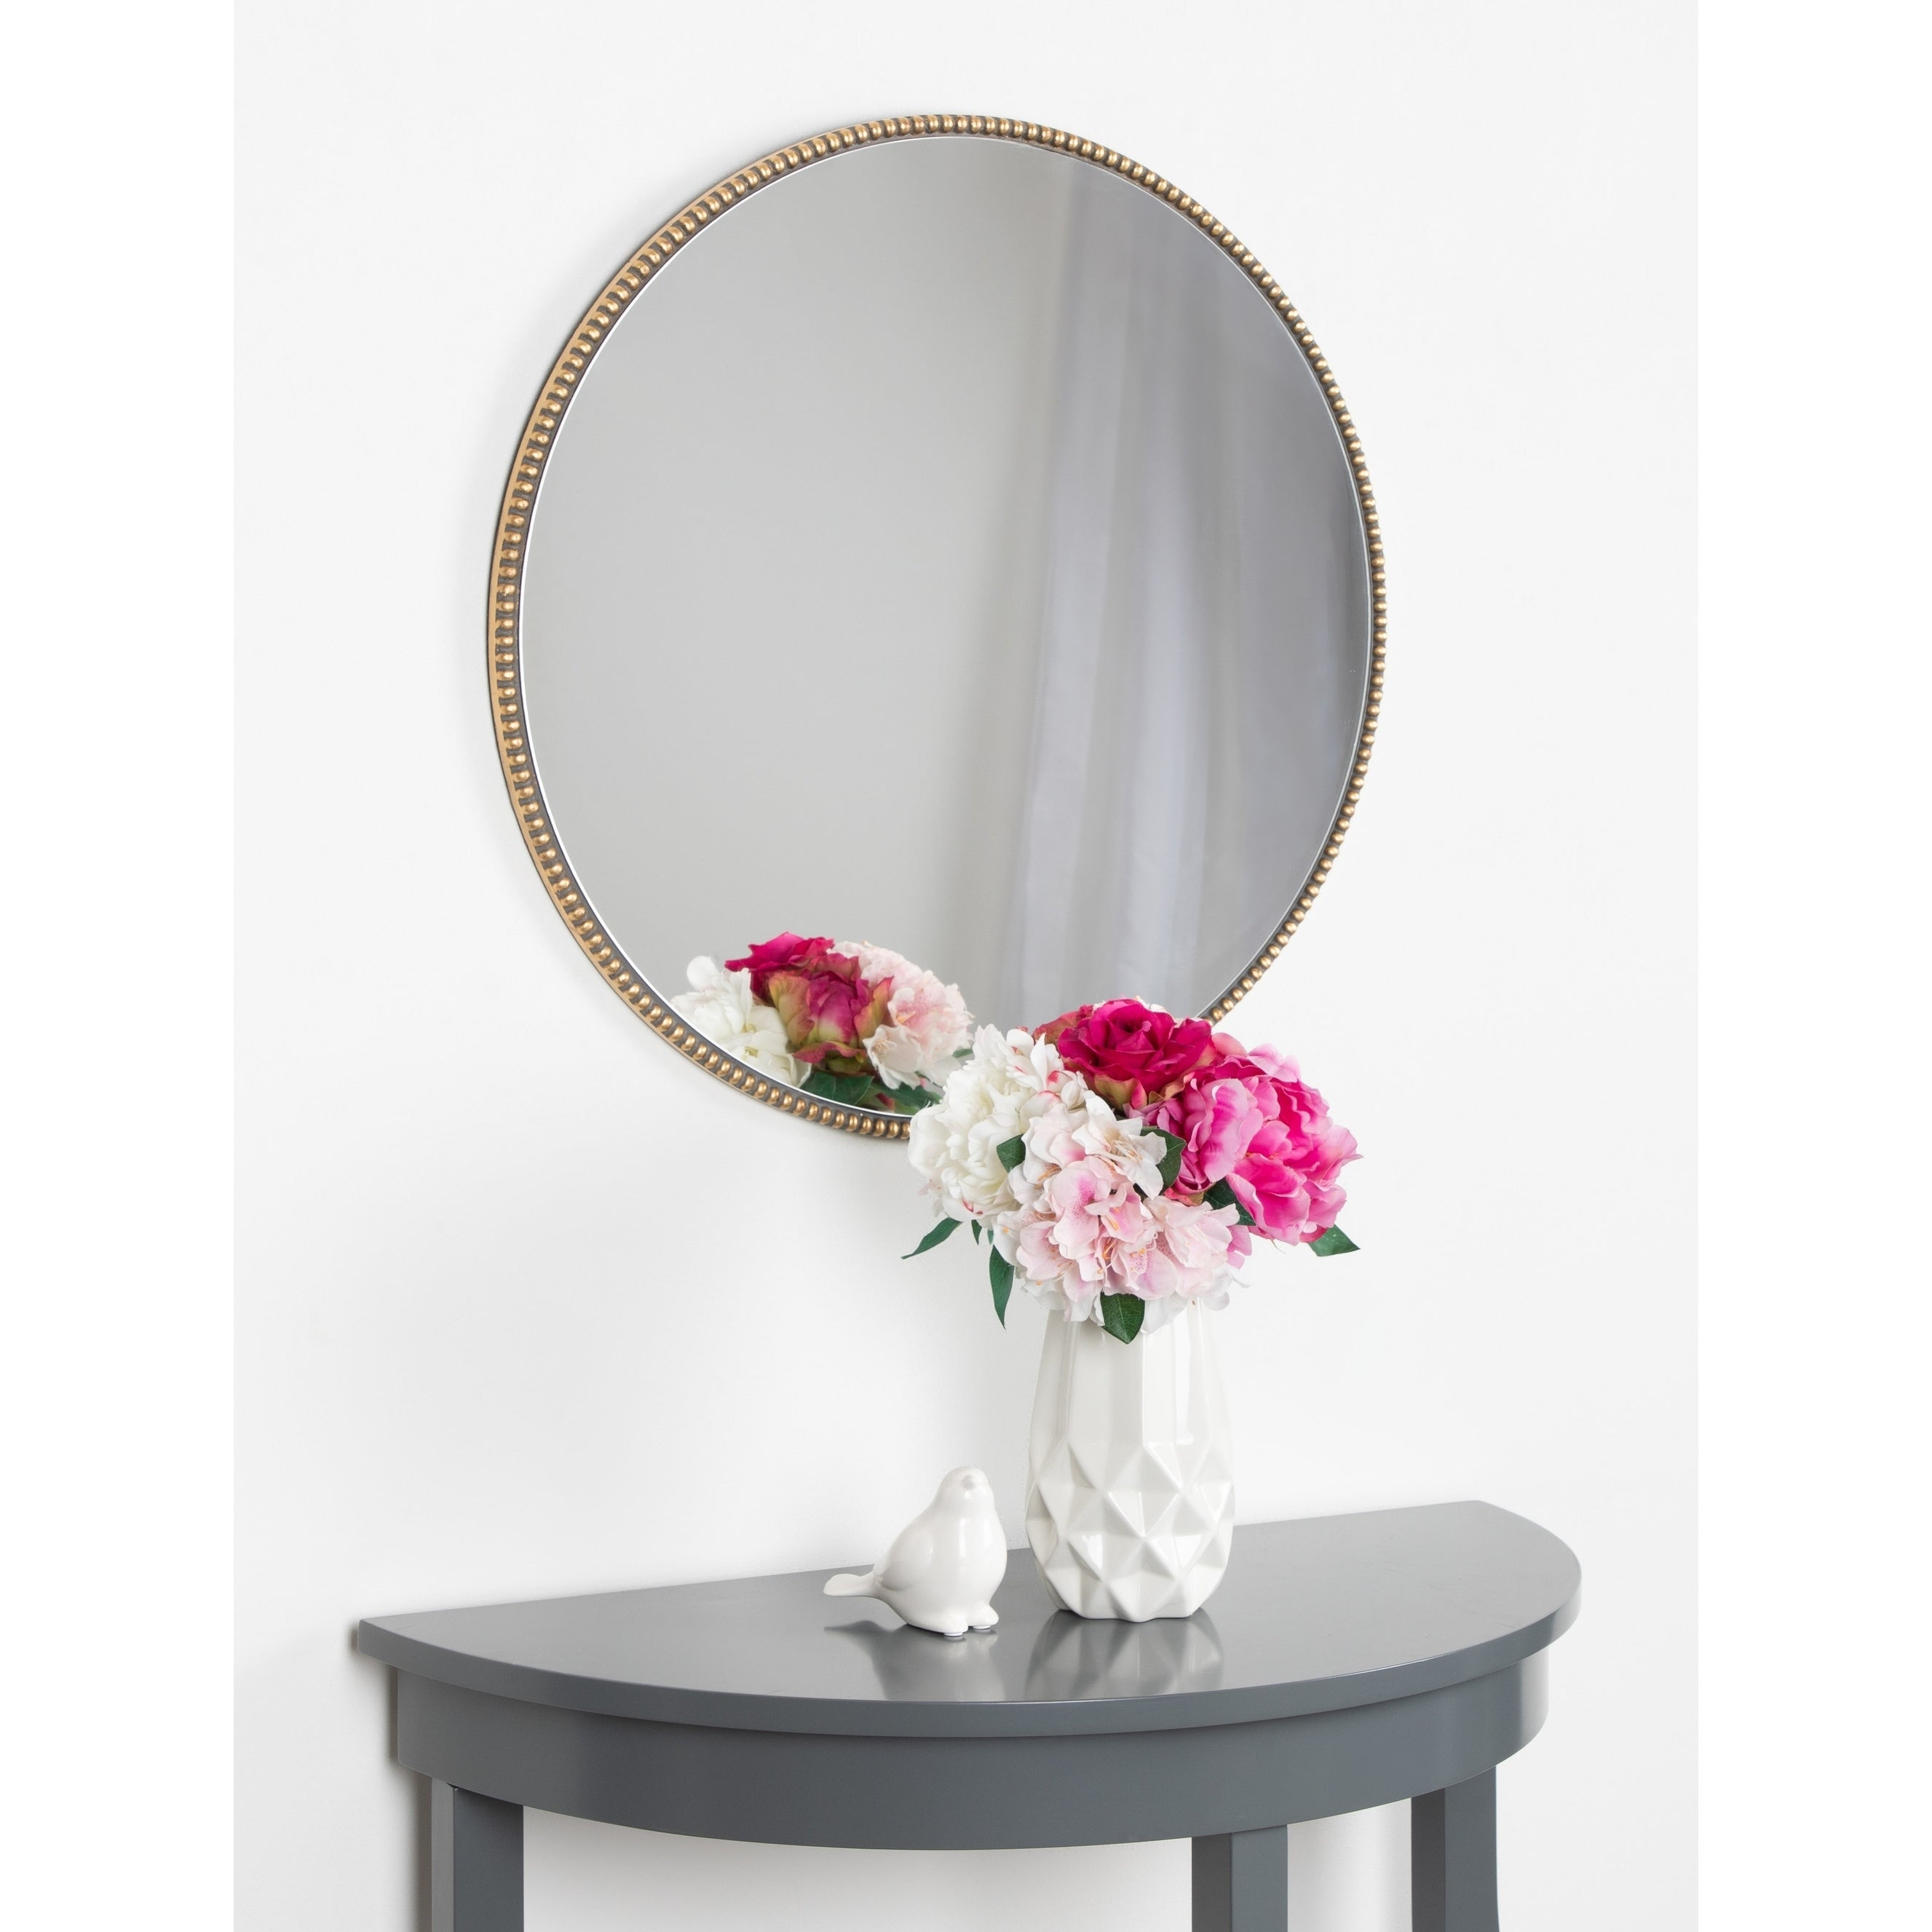 Shop Kate And Laurel Gwendolyn Round Beaded Accent Wall Pertaining To Beaded Accent Wall Mirrors (View 11 of 20)